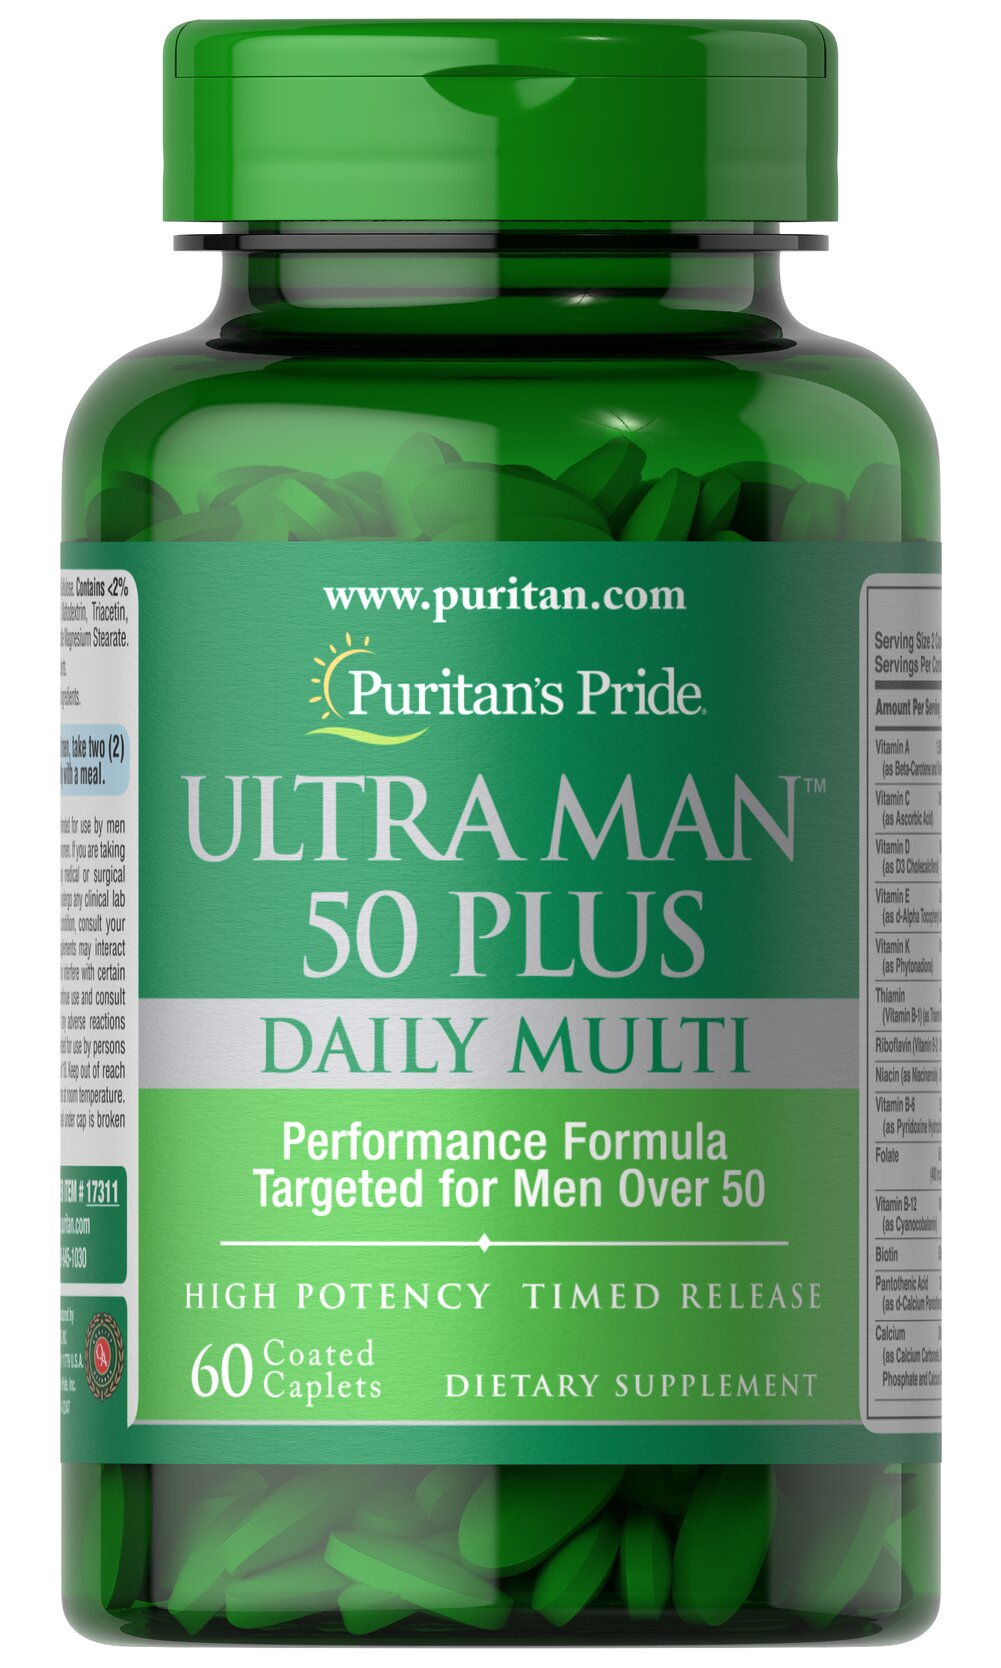 Ultra Vita Man™ 50 Plus • High performance multi with over 50 important nutrients for men's health**<br />• Created especially for men over 50<br />• Unlike other multis, Ultra Vita Man 50 Plus is enhanced with vital nutrients not commonly found in the diet.<br />• Just two coated caplets a day<br />• Features Zinc, an important mineral that contributes to normal semen production and sexual health** 60 Caplets  $16.99